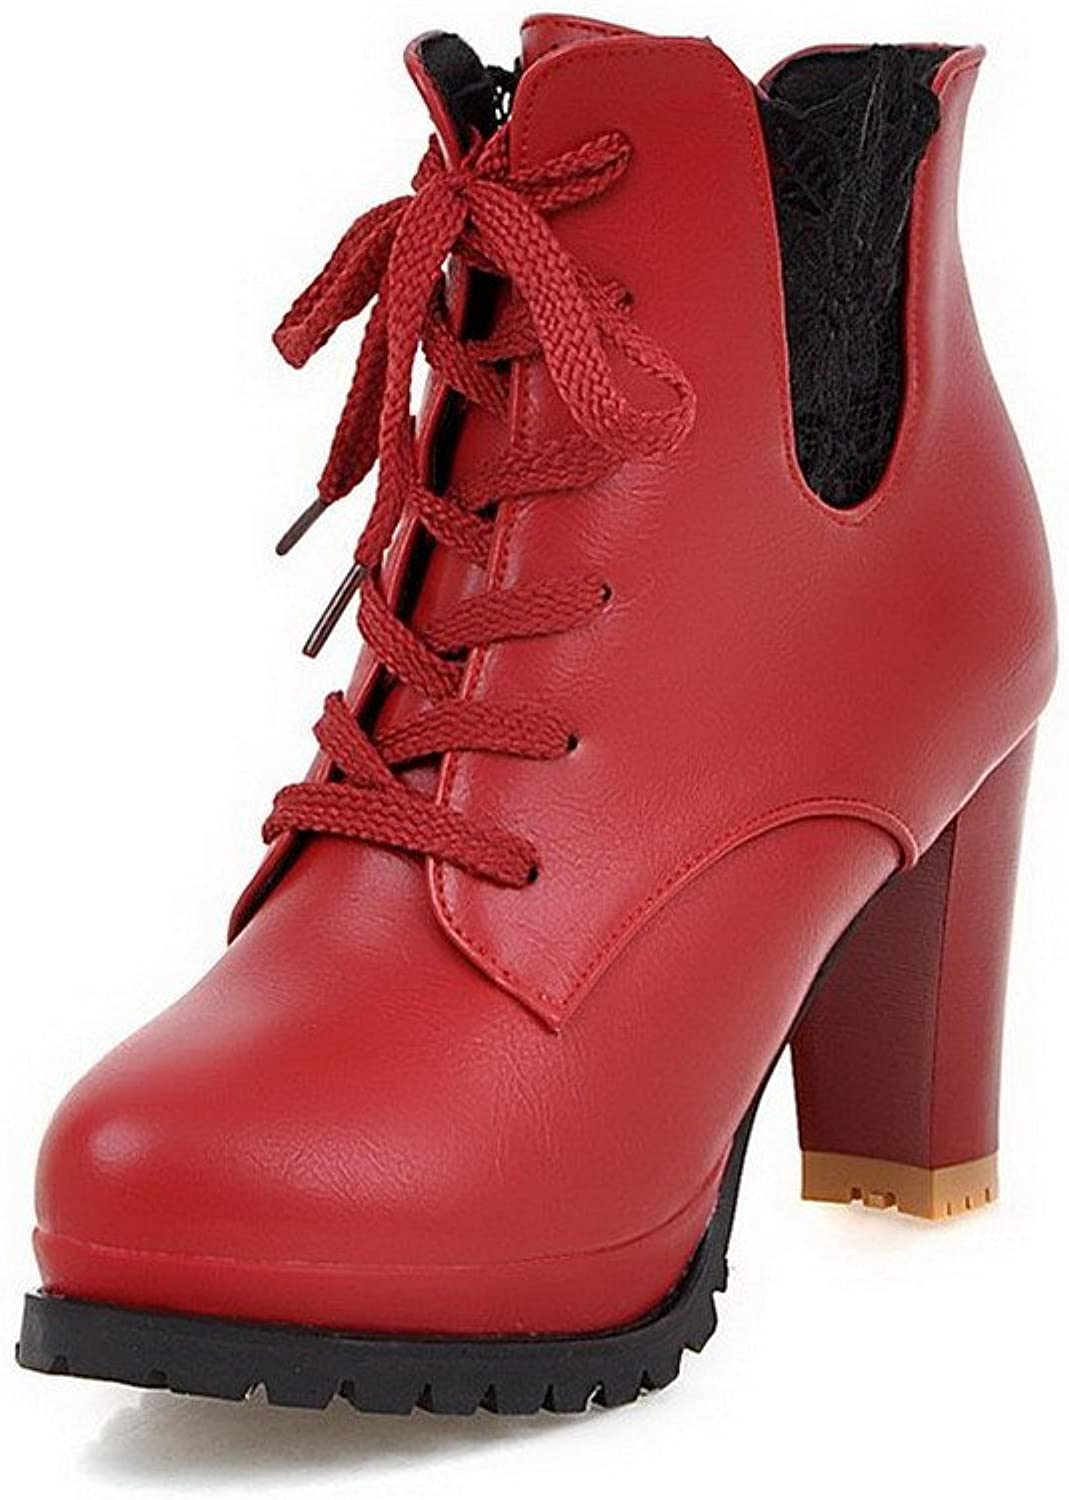 WeenFashion Women's Low-top Lace-up Soft Material High-Heels Round Closed Toe Boots